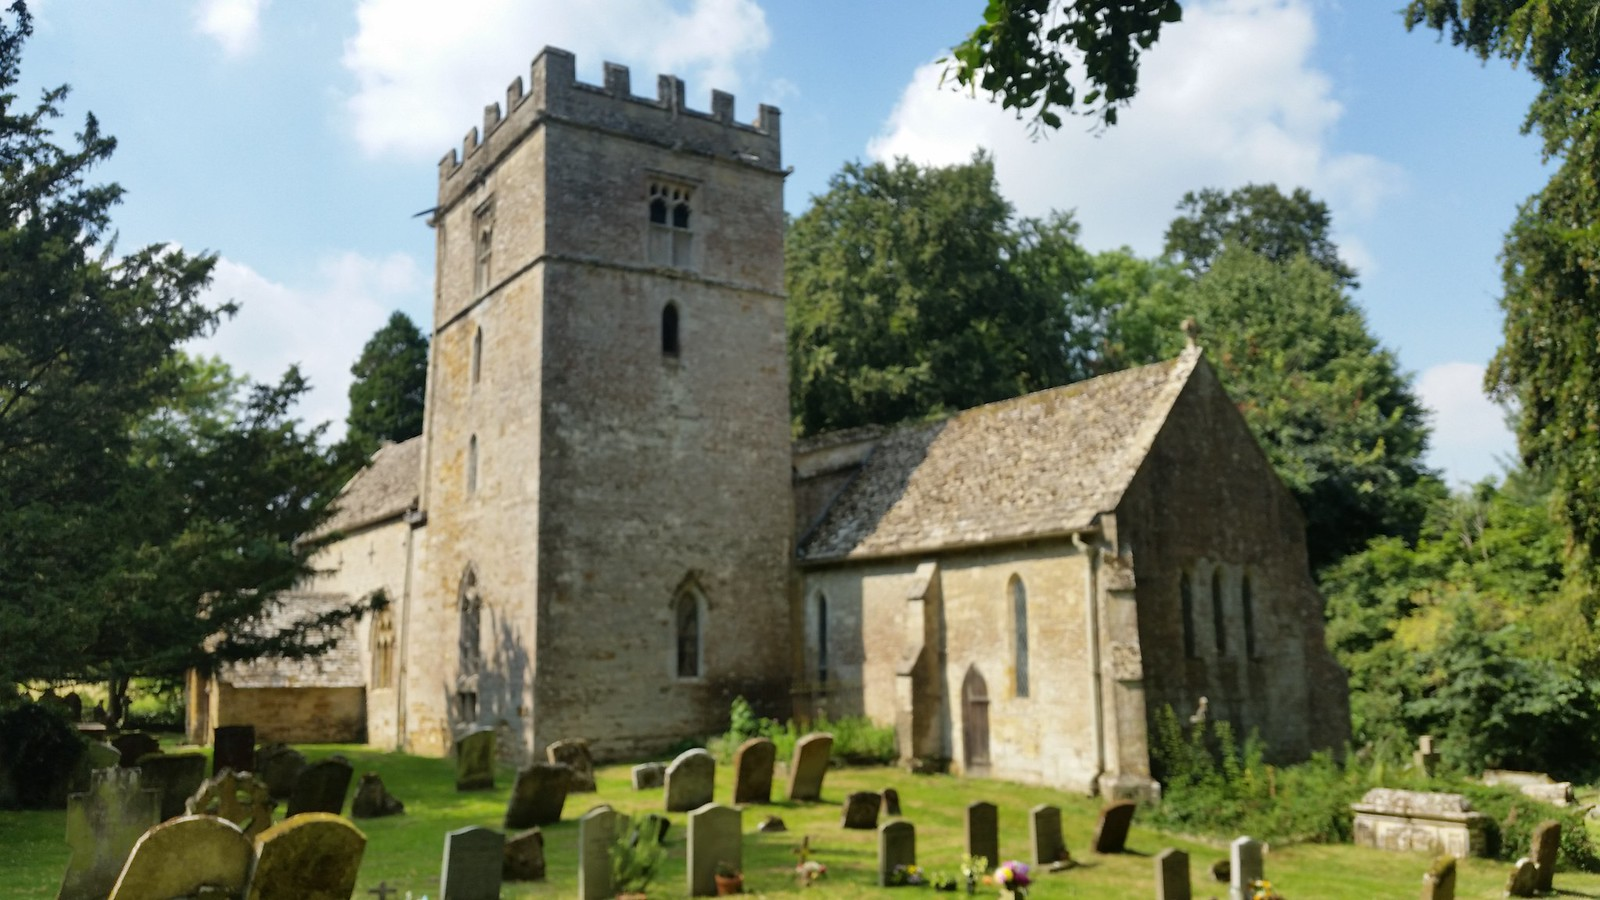 St Nicholas Church, Lowewr Oddington